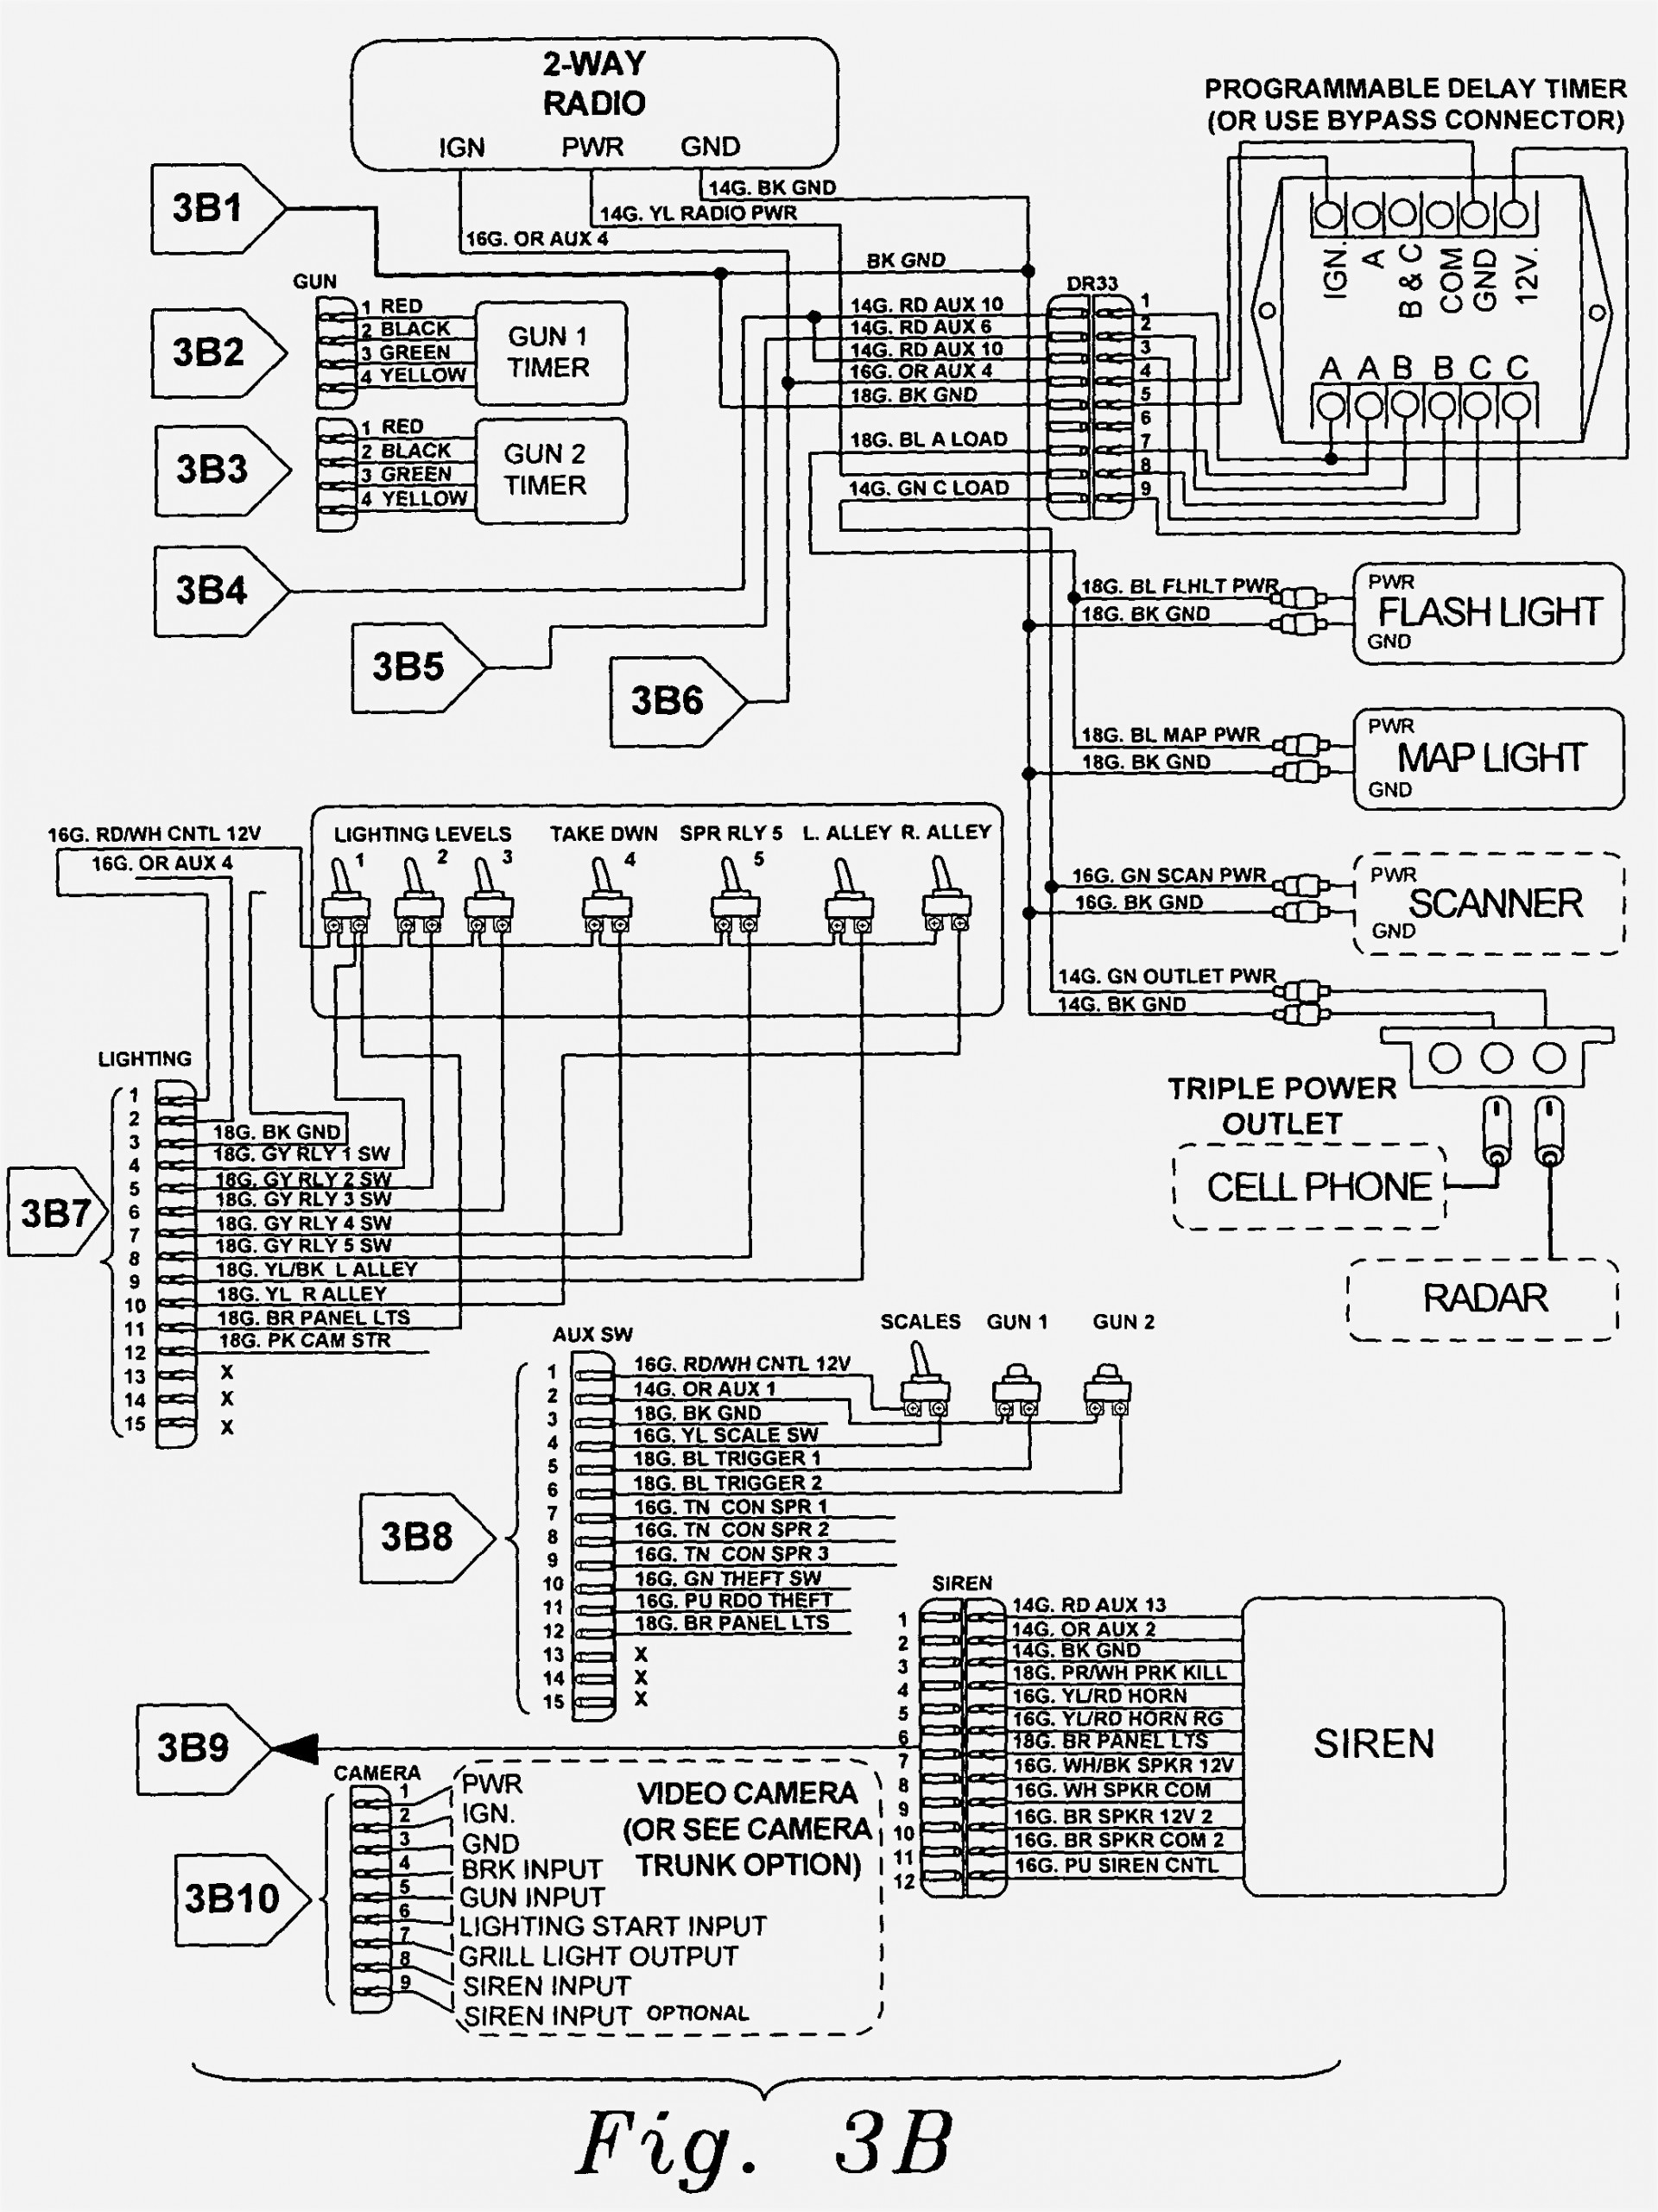 Wobbulator Siren Wiring Diagram